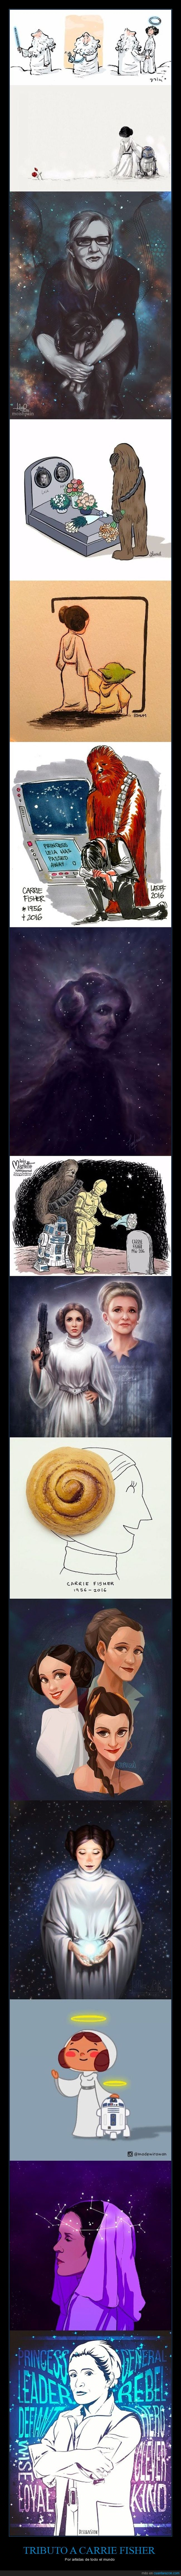 carrie fisher,dep,homenaje,rip,tributo